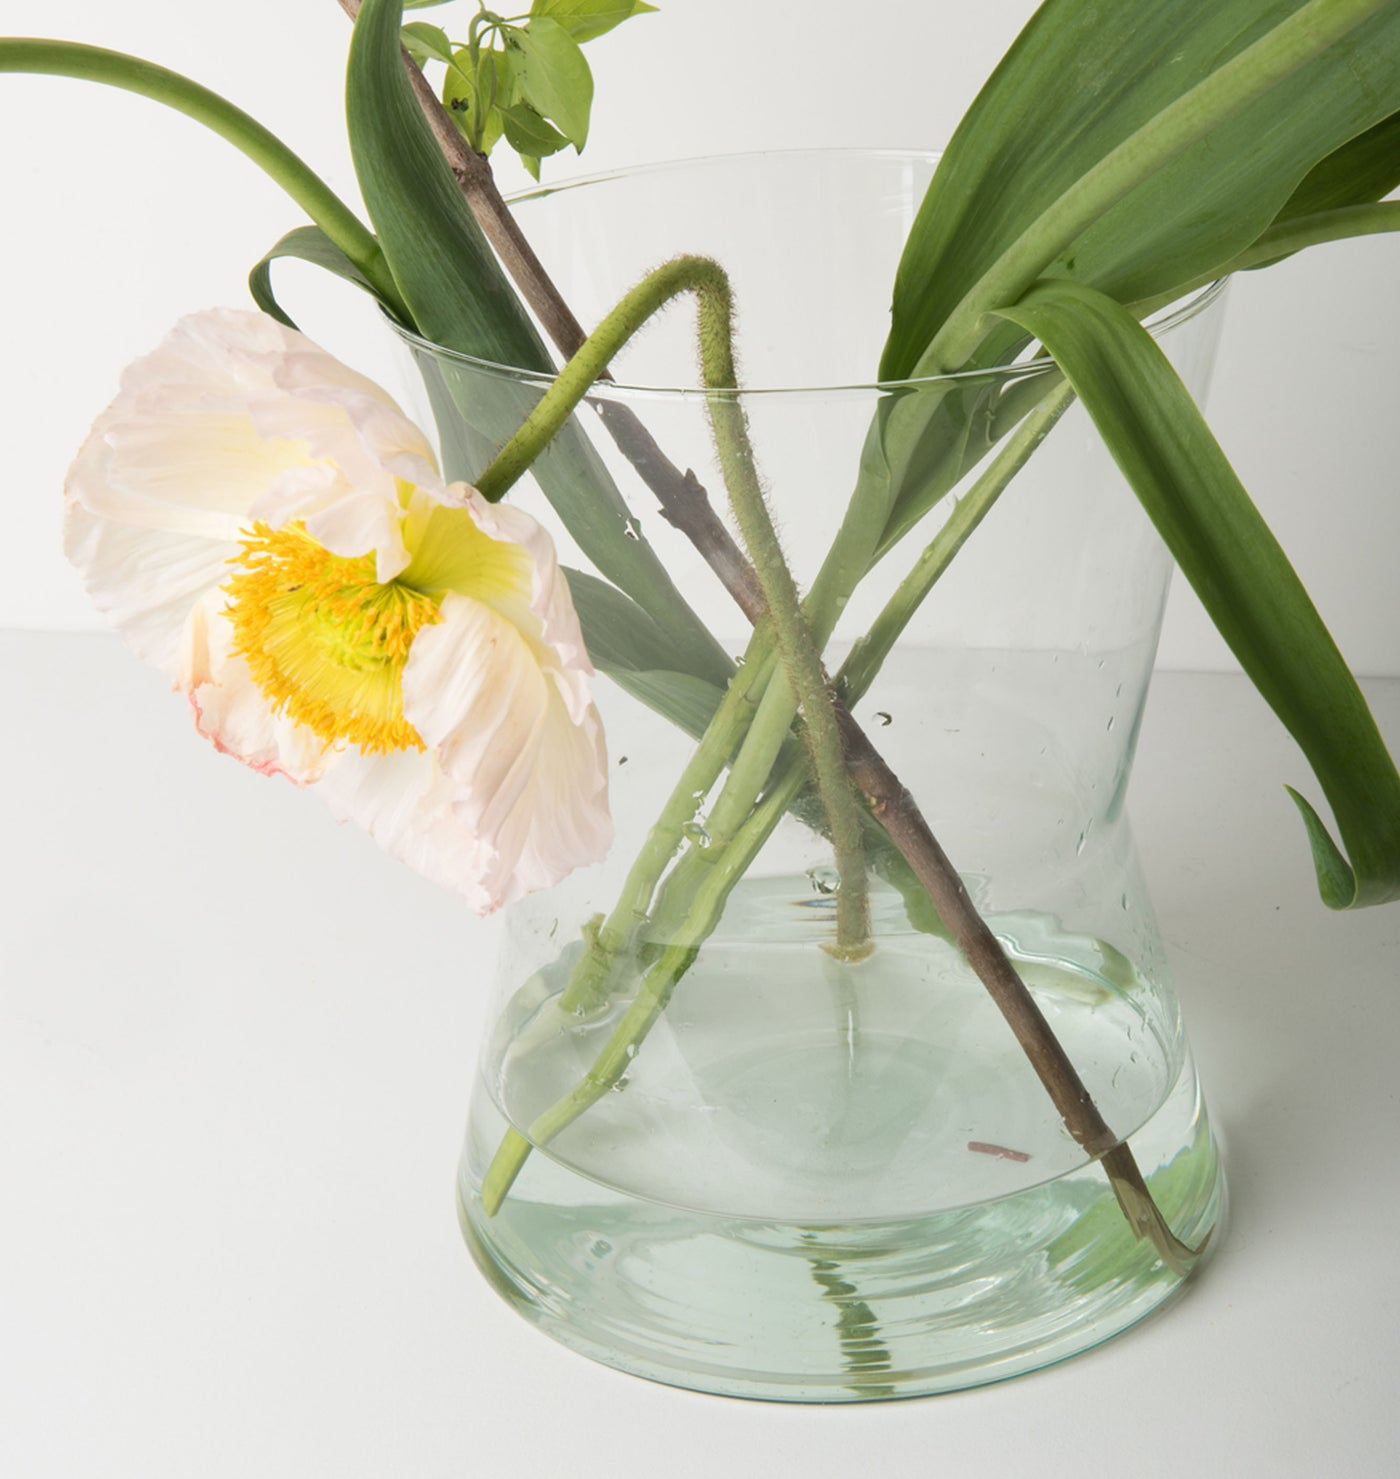 Recycled Glass Vase Diabolo - Urban Nature Culture